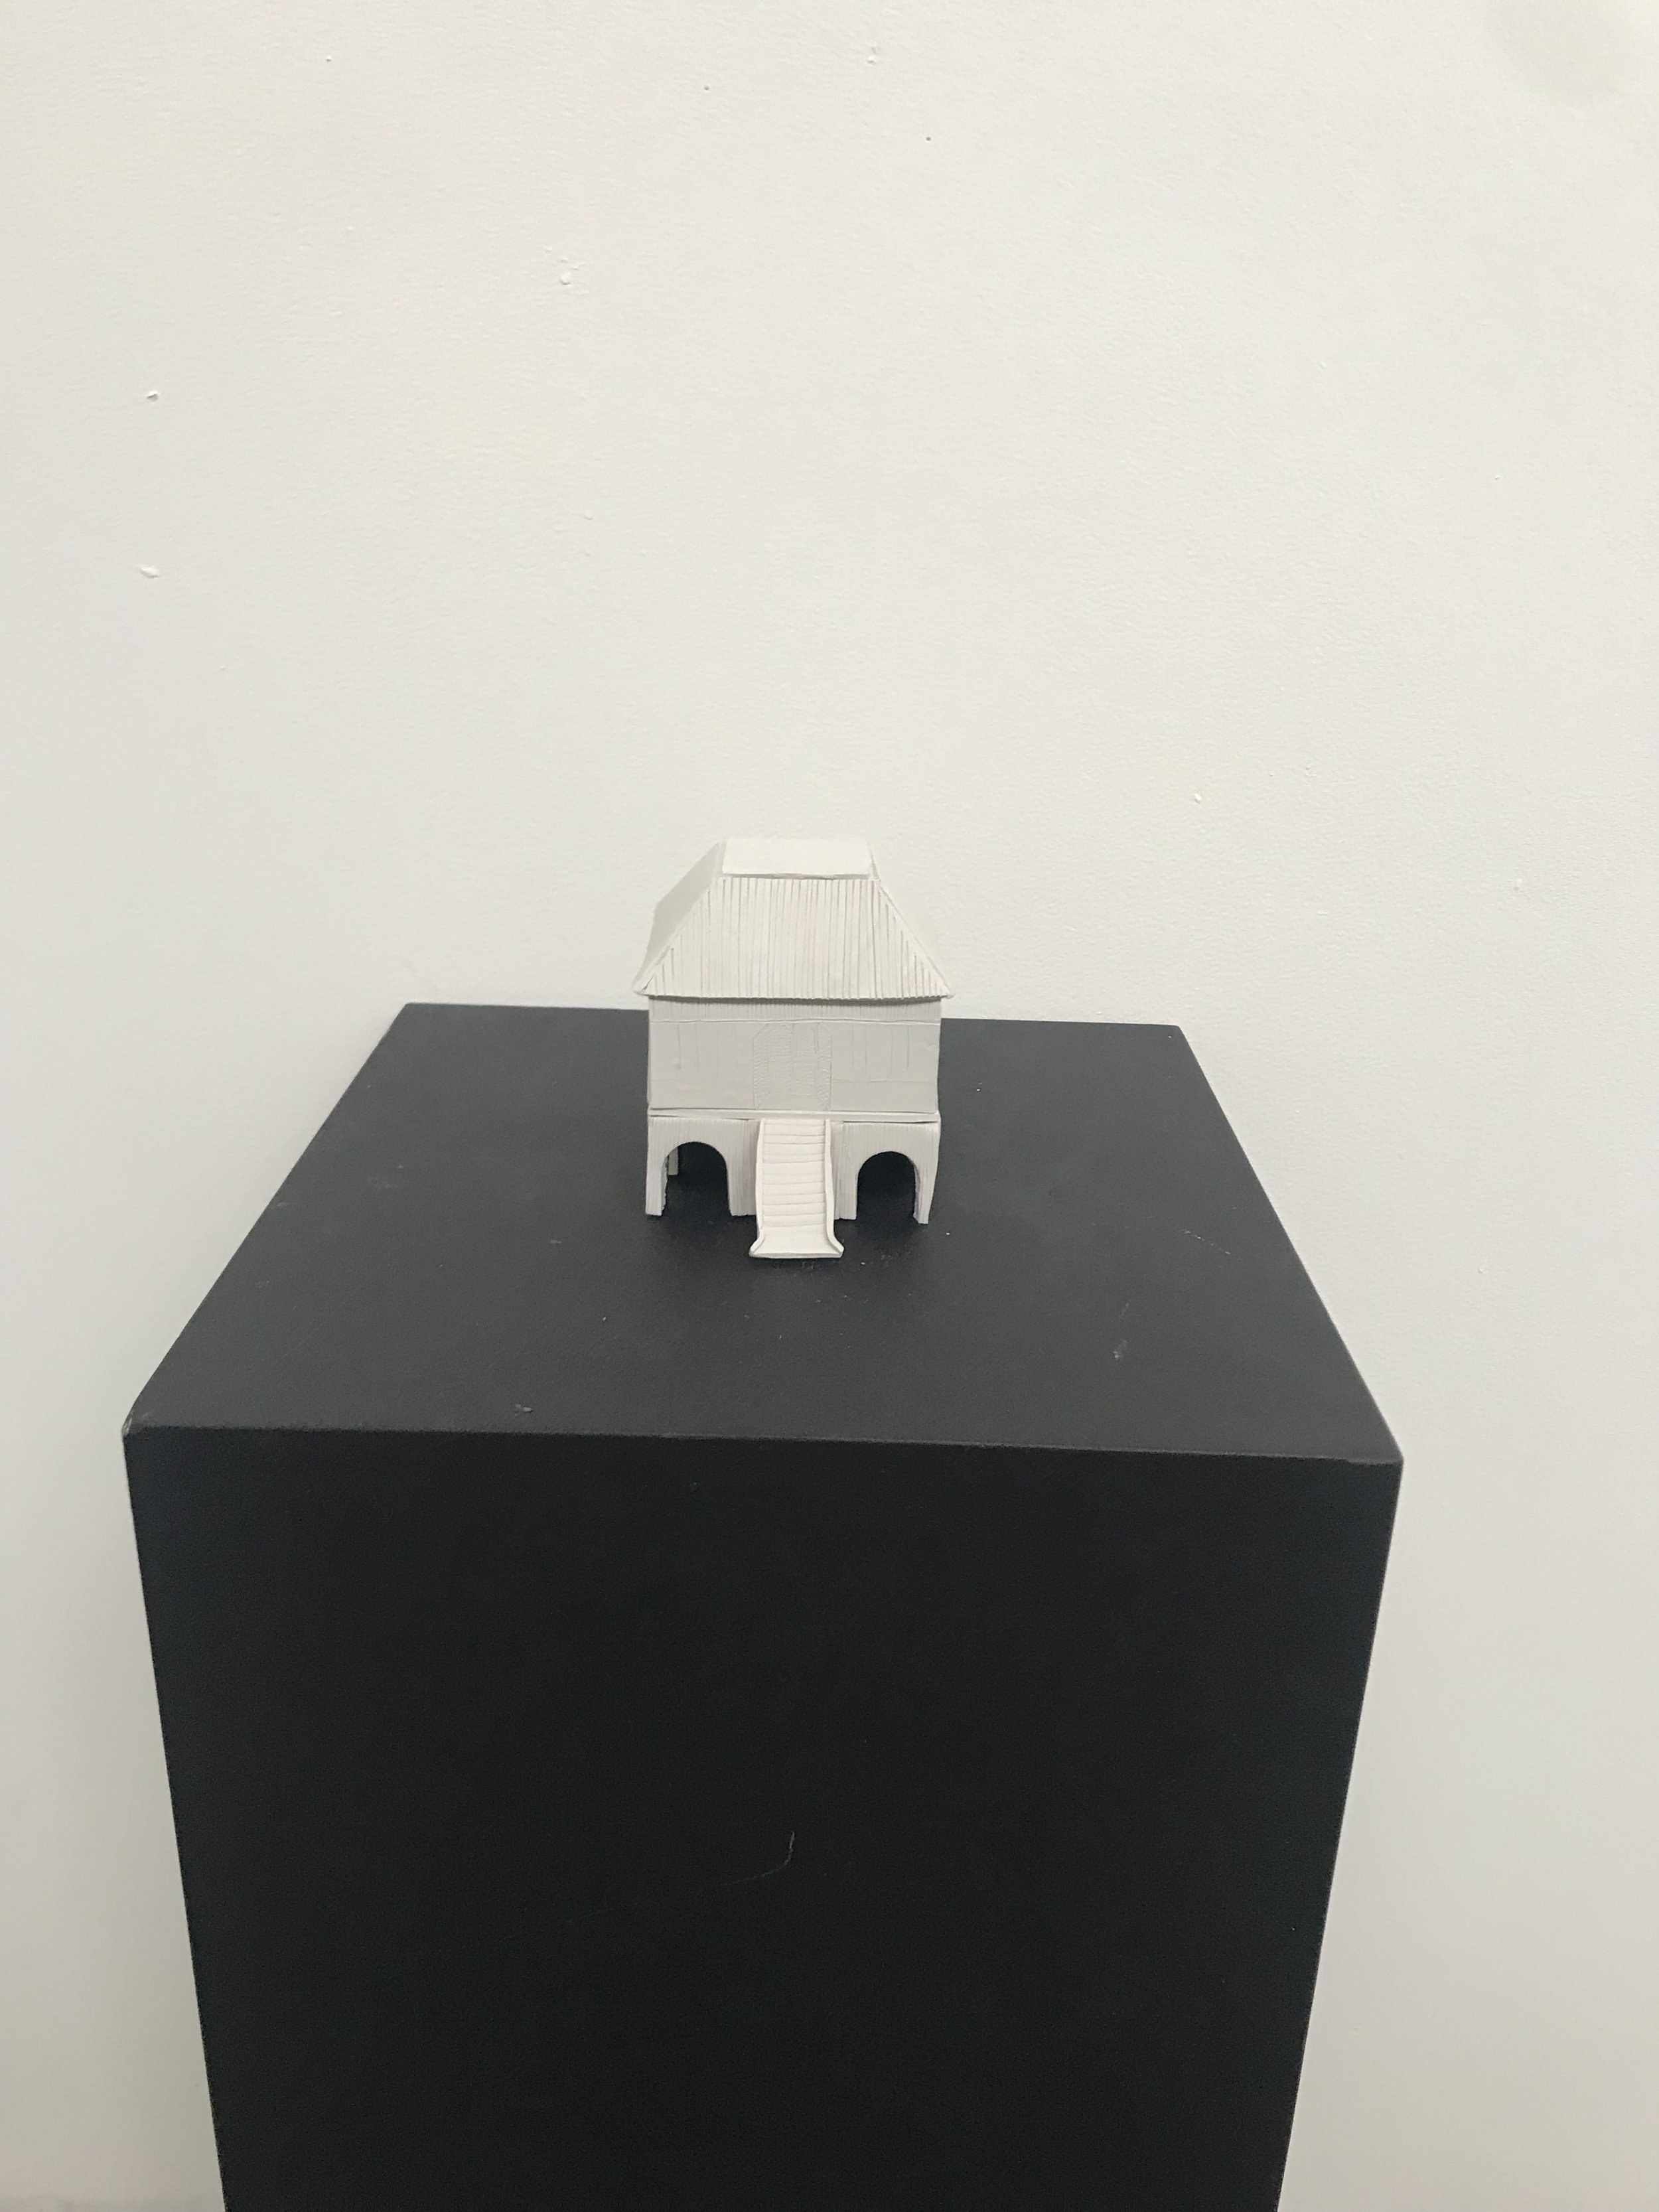 Member artwork 'The Ghost House', Tess McCabe 2019 for group exhibition 'Beg. Borrow. Steal.'